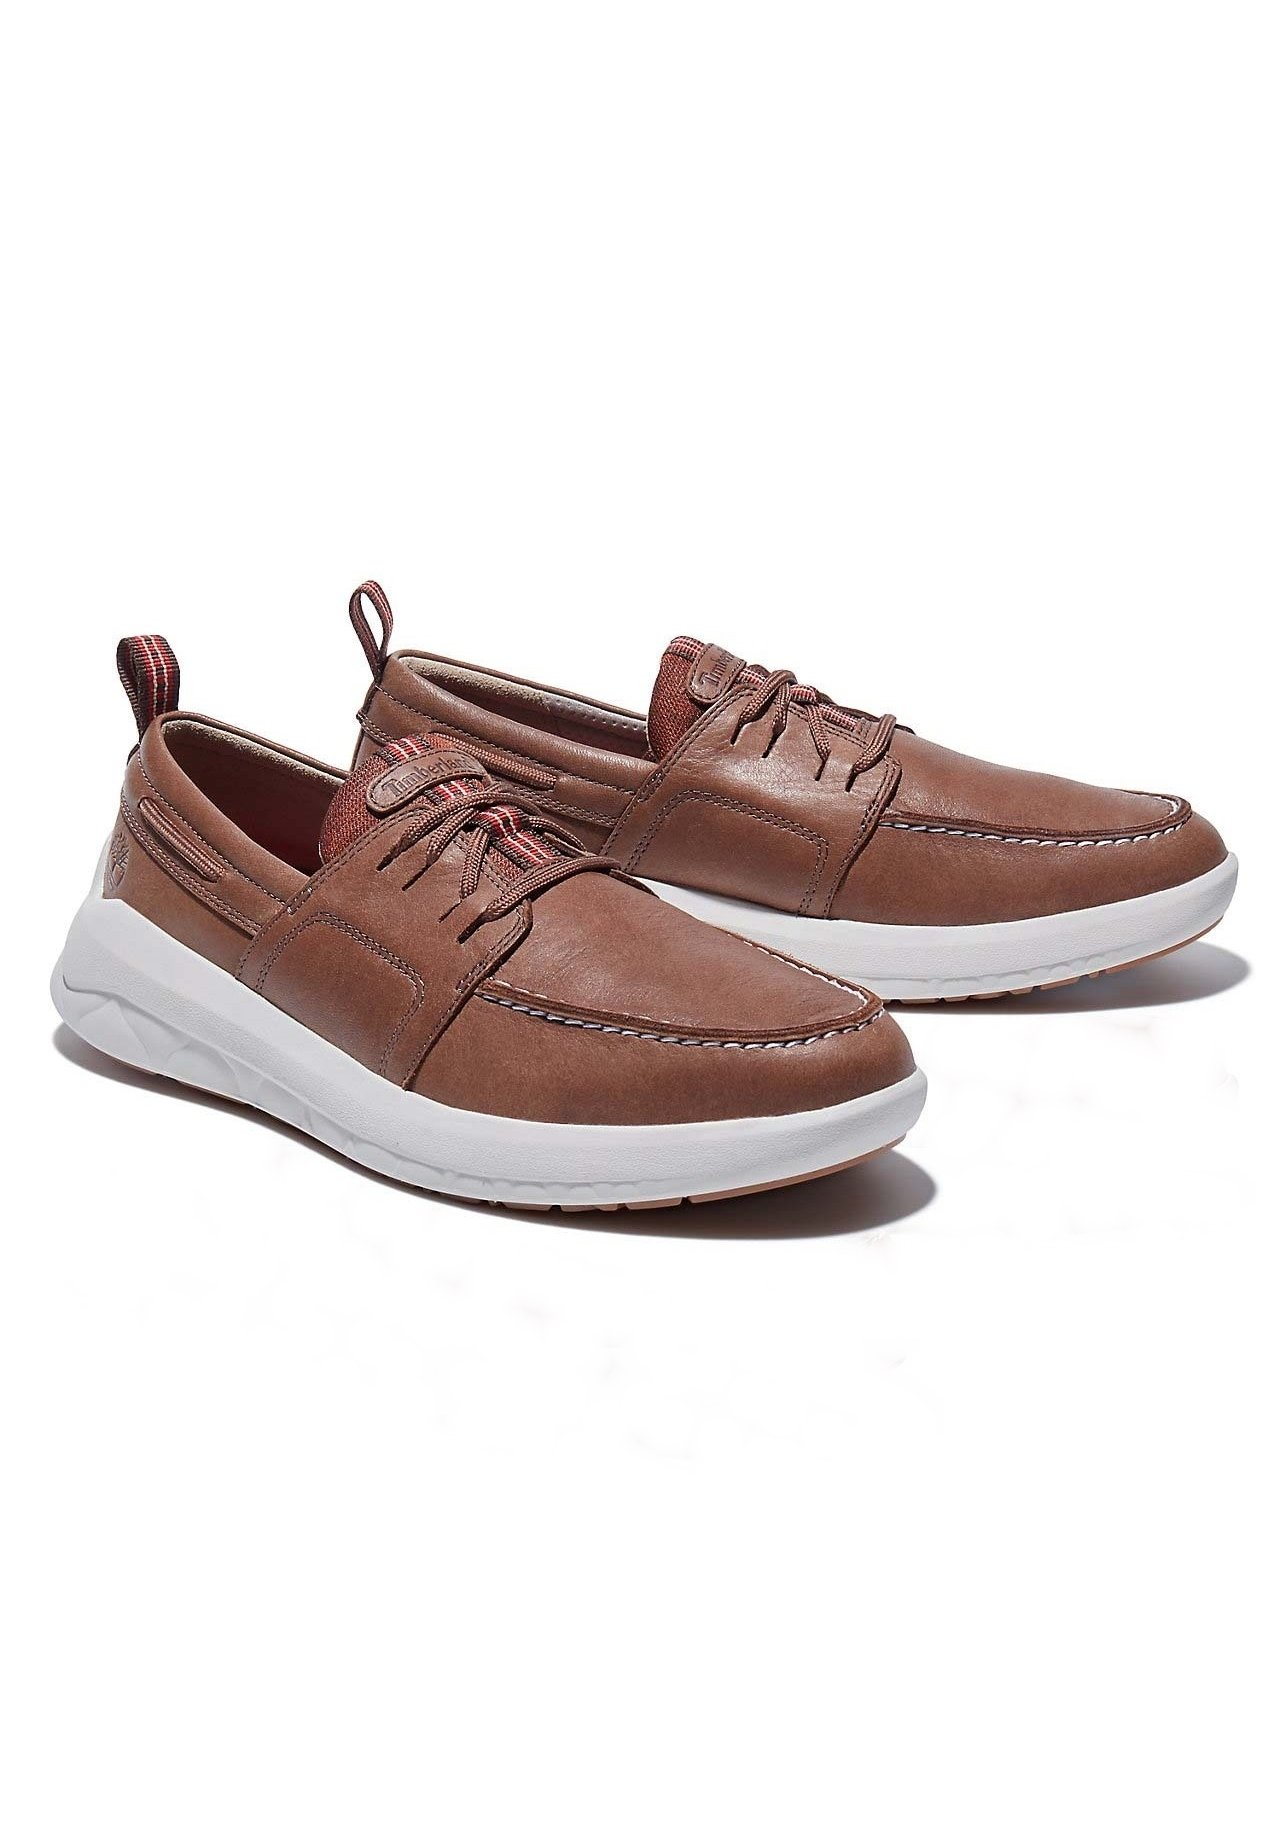 Homme BRADSTREET ULTRA BOAT - Chaussures bateau